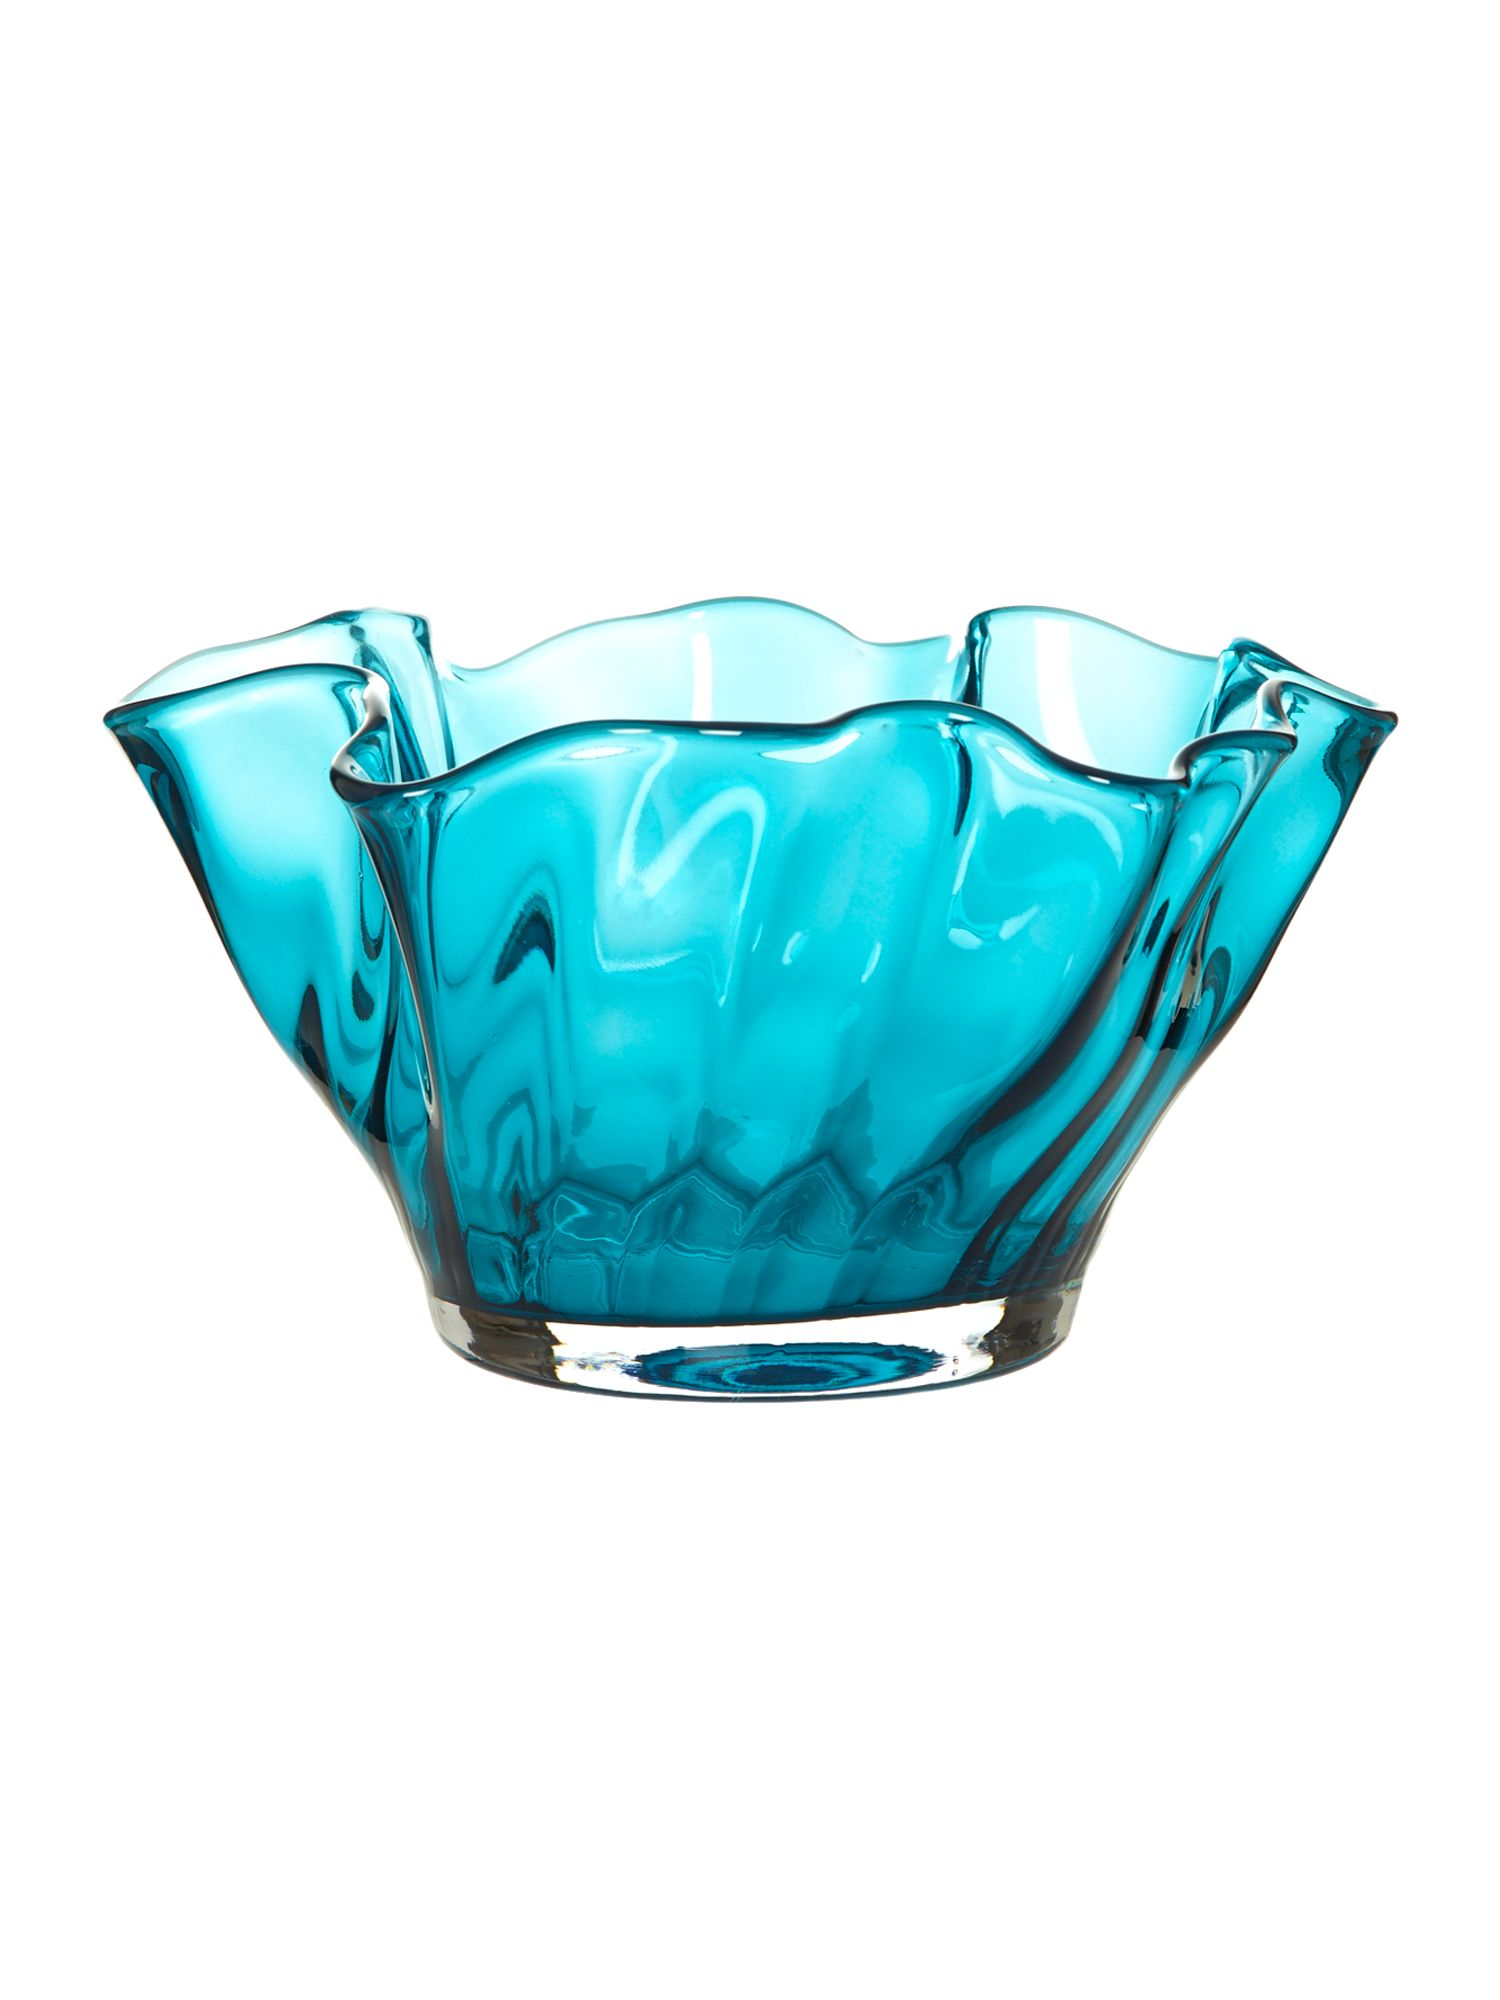 Optic handkerchief bowl, teal